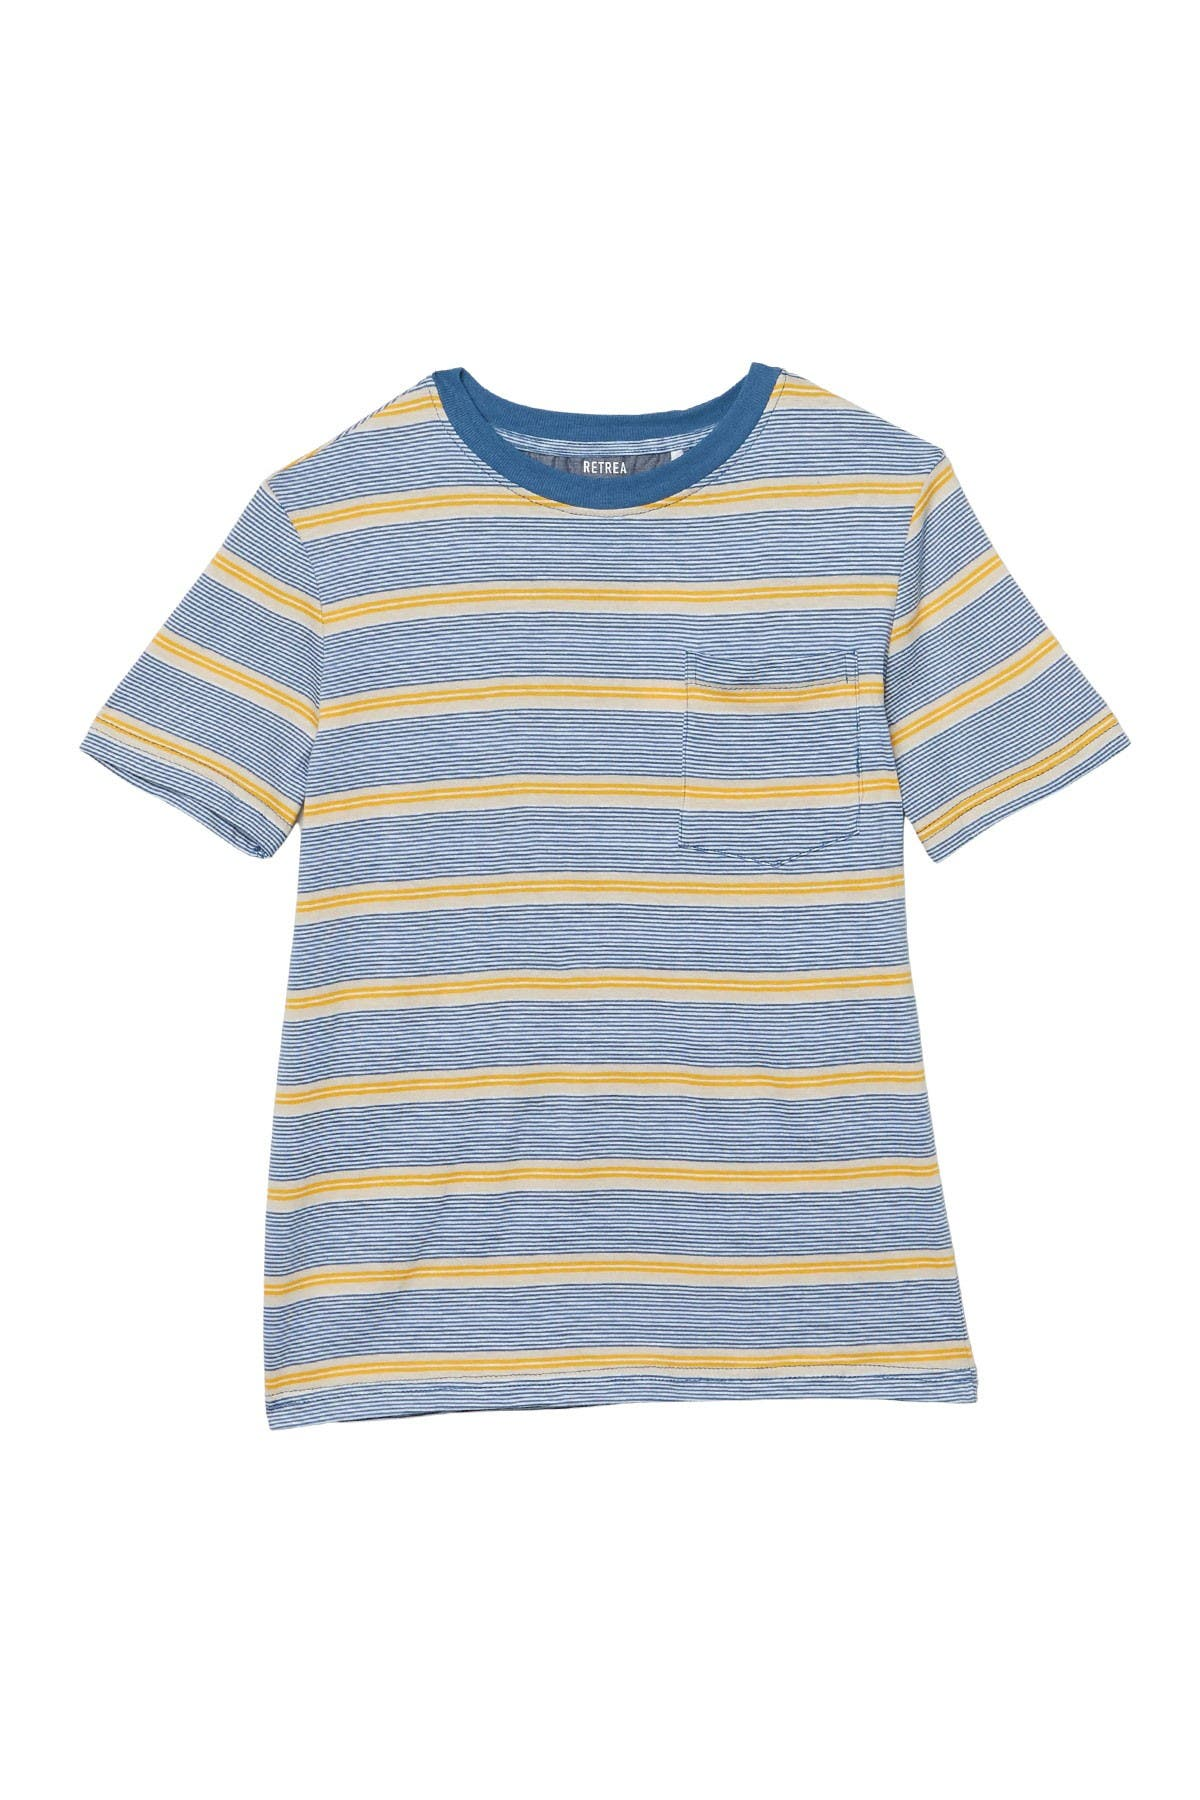 Image of Sovereign Code Assembly Stripe Print T-Shirt